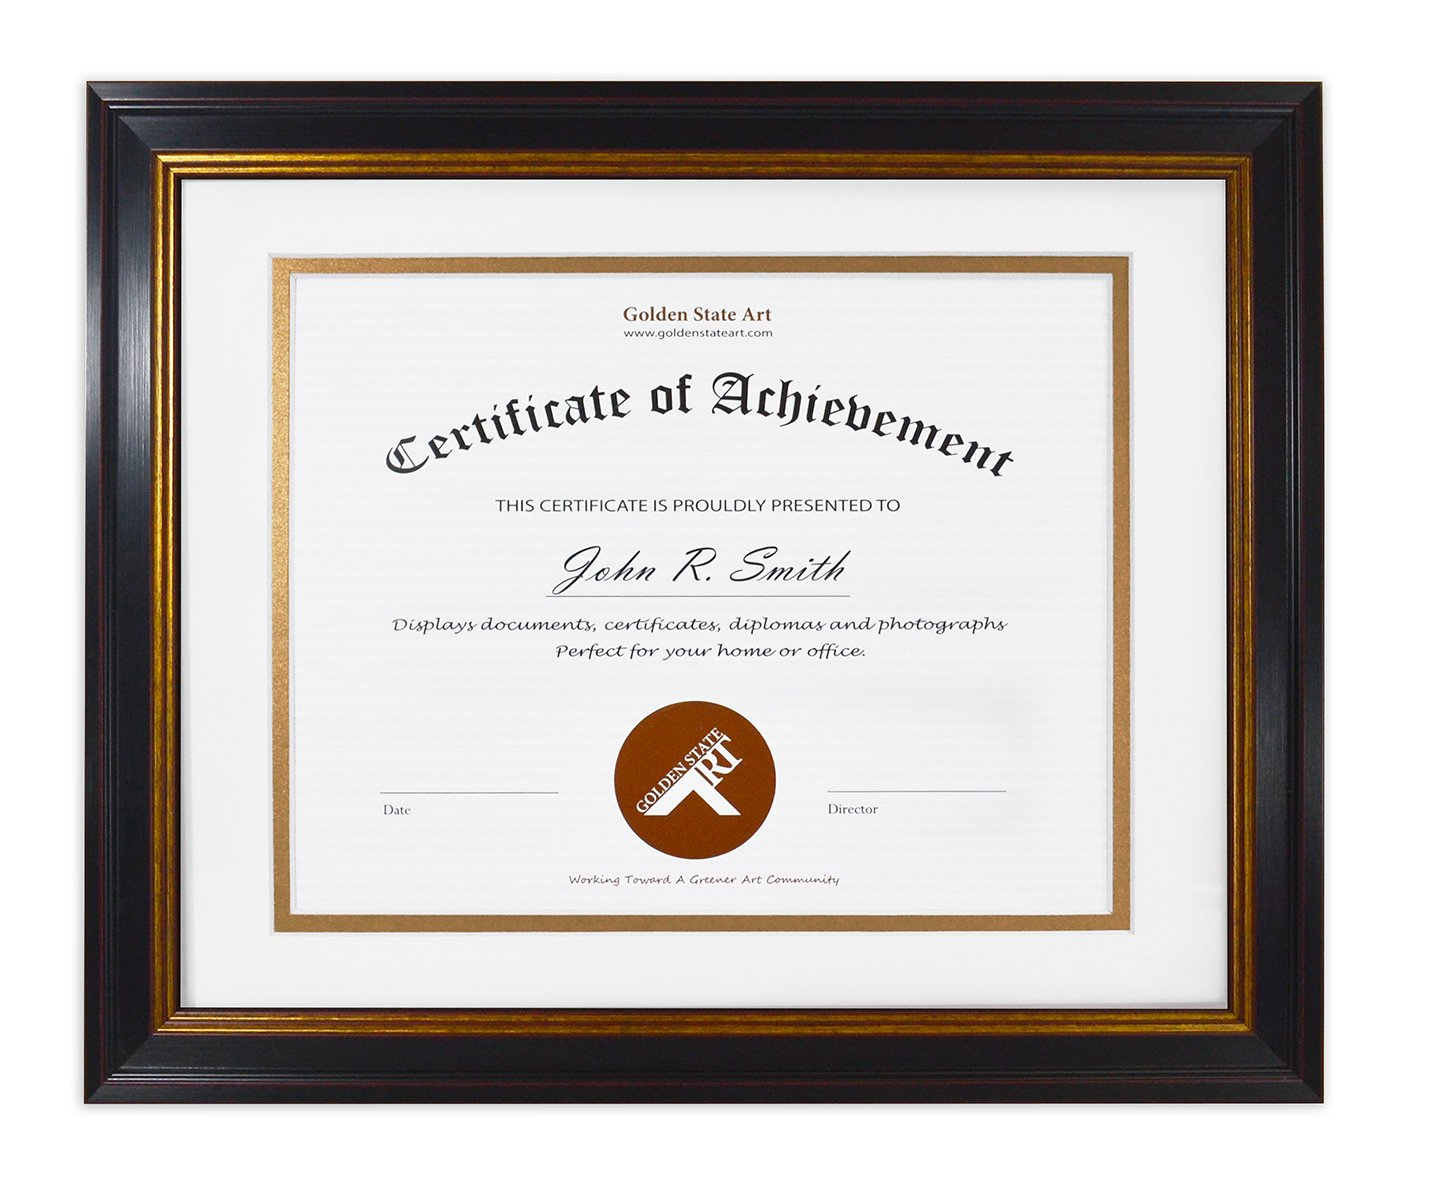 Golden State Art 11x14 Frame for 8.5x11 Diploma/Certificate, Black Gold & Burgundy color. Includes White Over Gold Double Mat and Real Glass